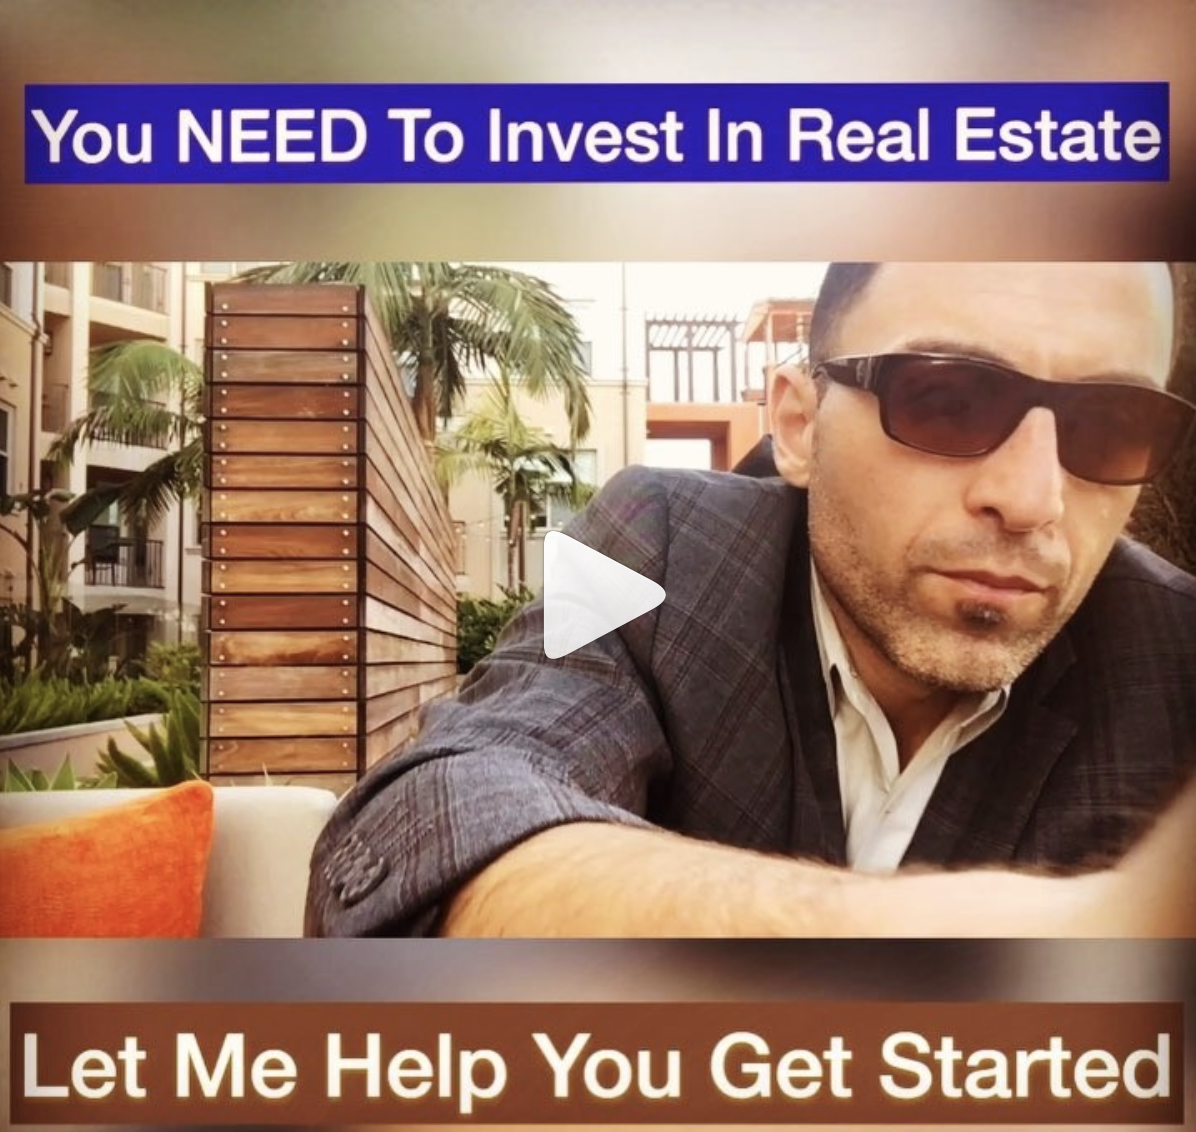 You NEED to invest in real estate